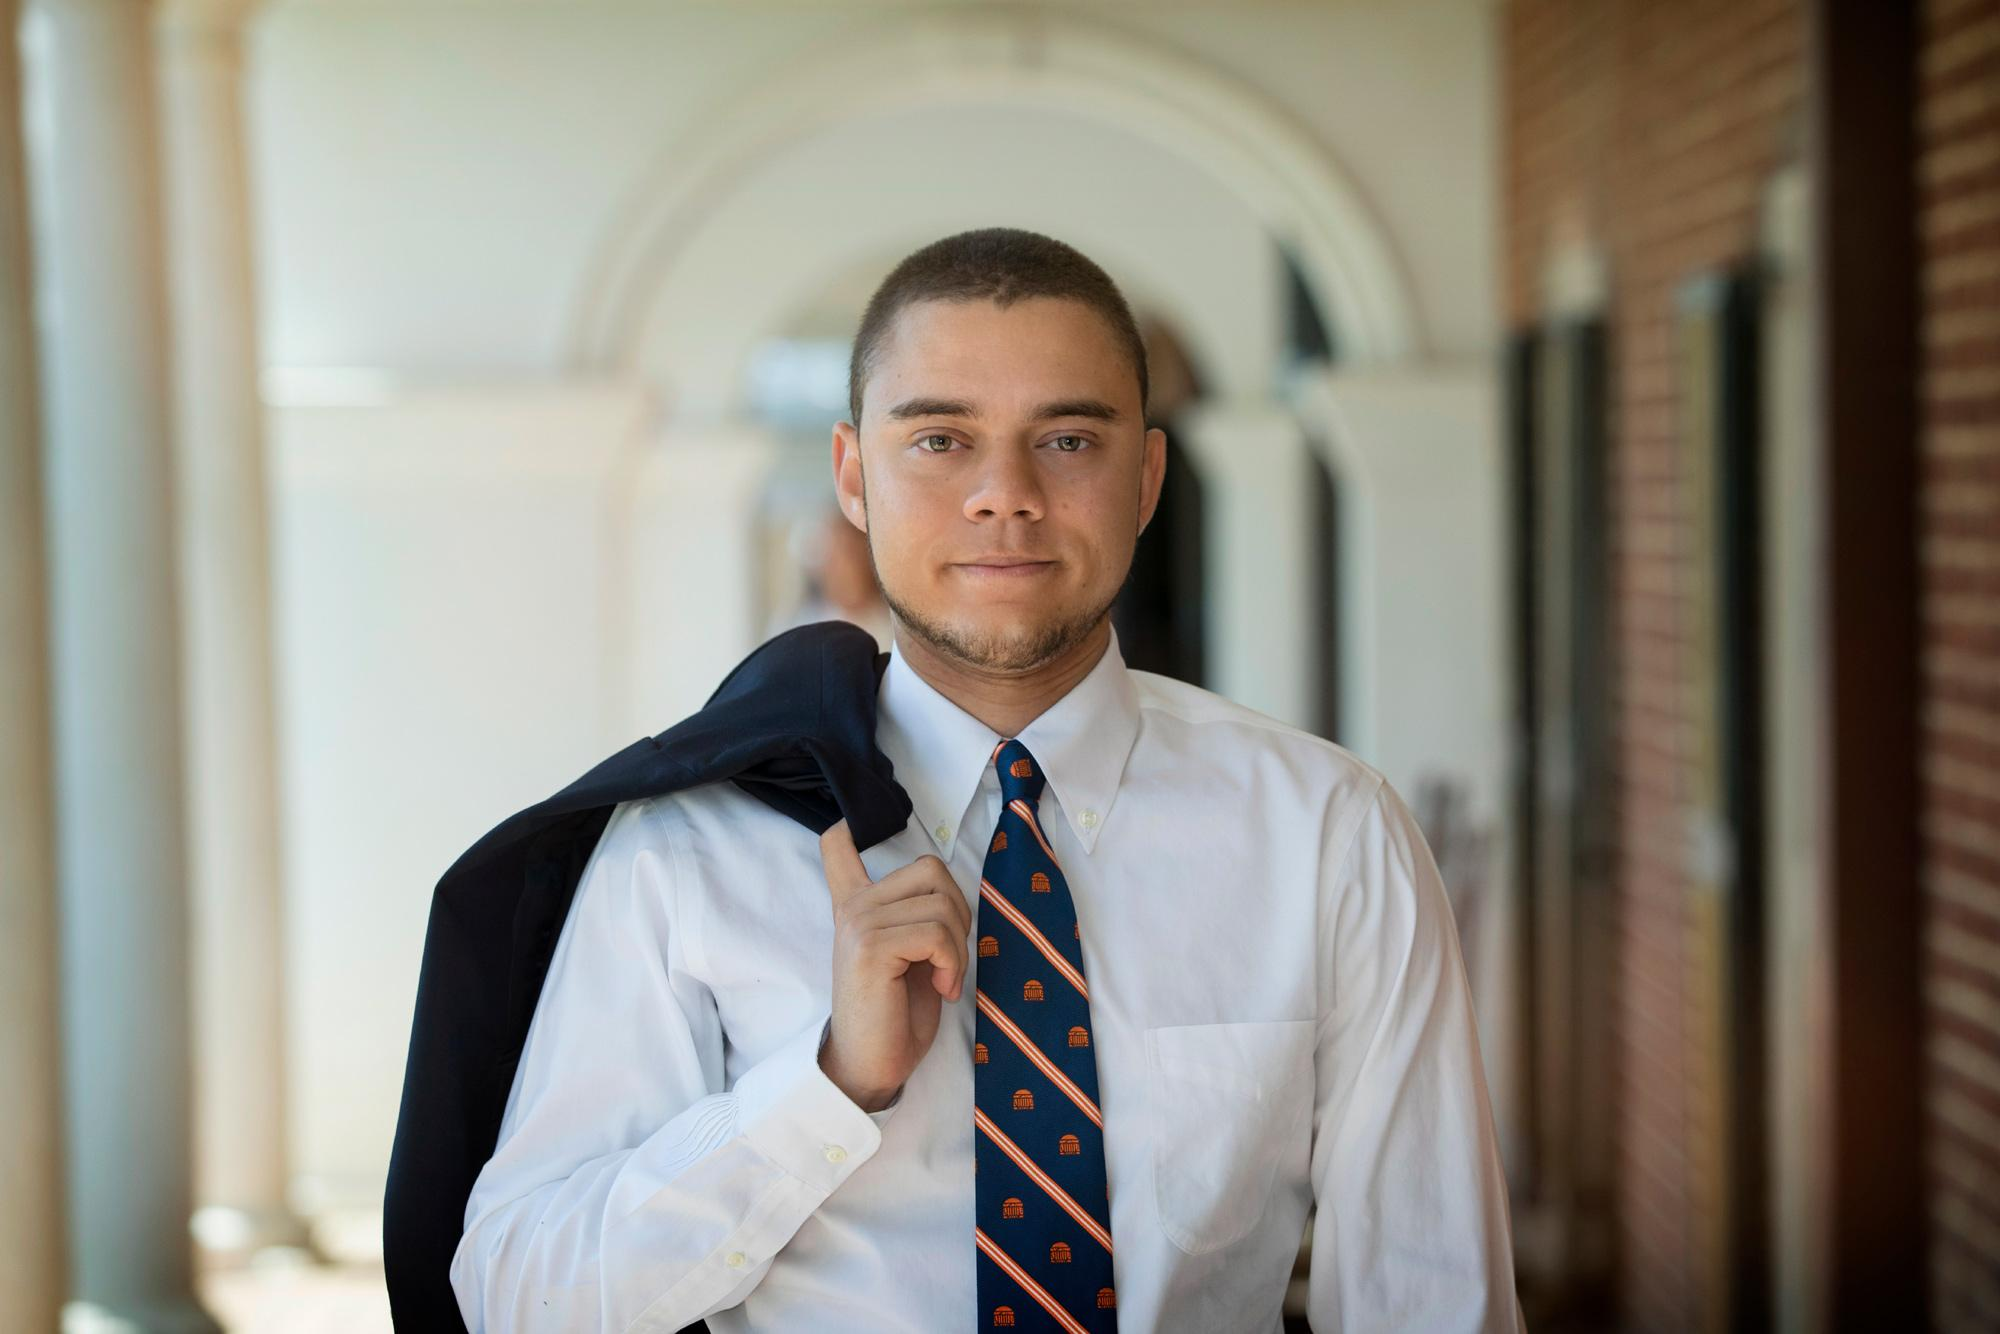 Jacob Uskavitch, an aspiring doctor-to-be, lived on the Lawn and delved into the student experience at UVA. (Dan Addison, University Communications)